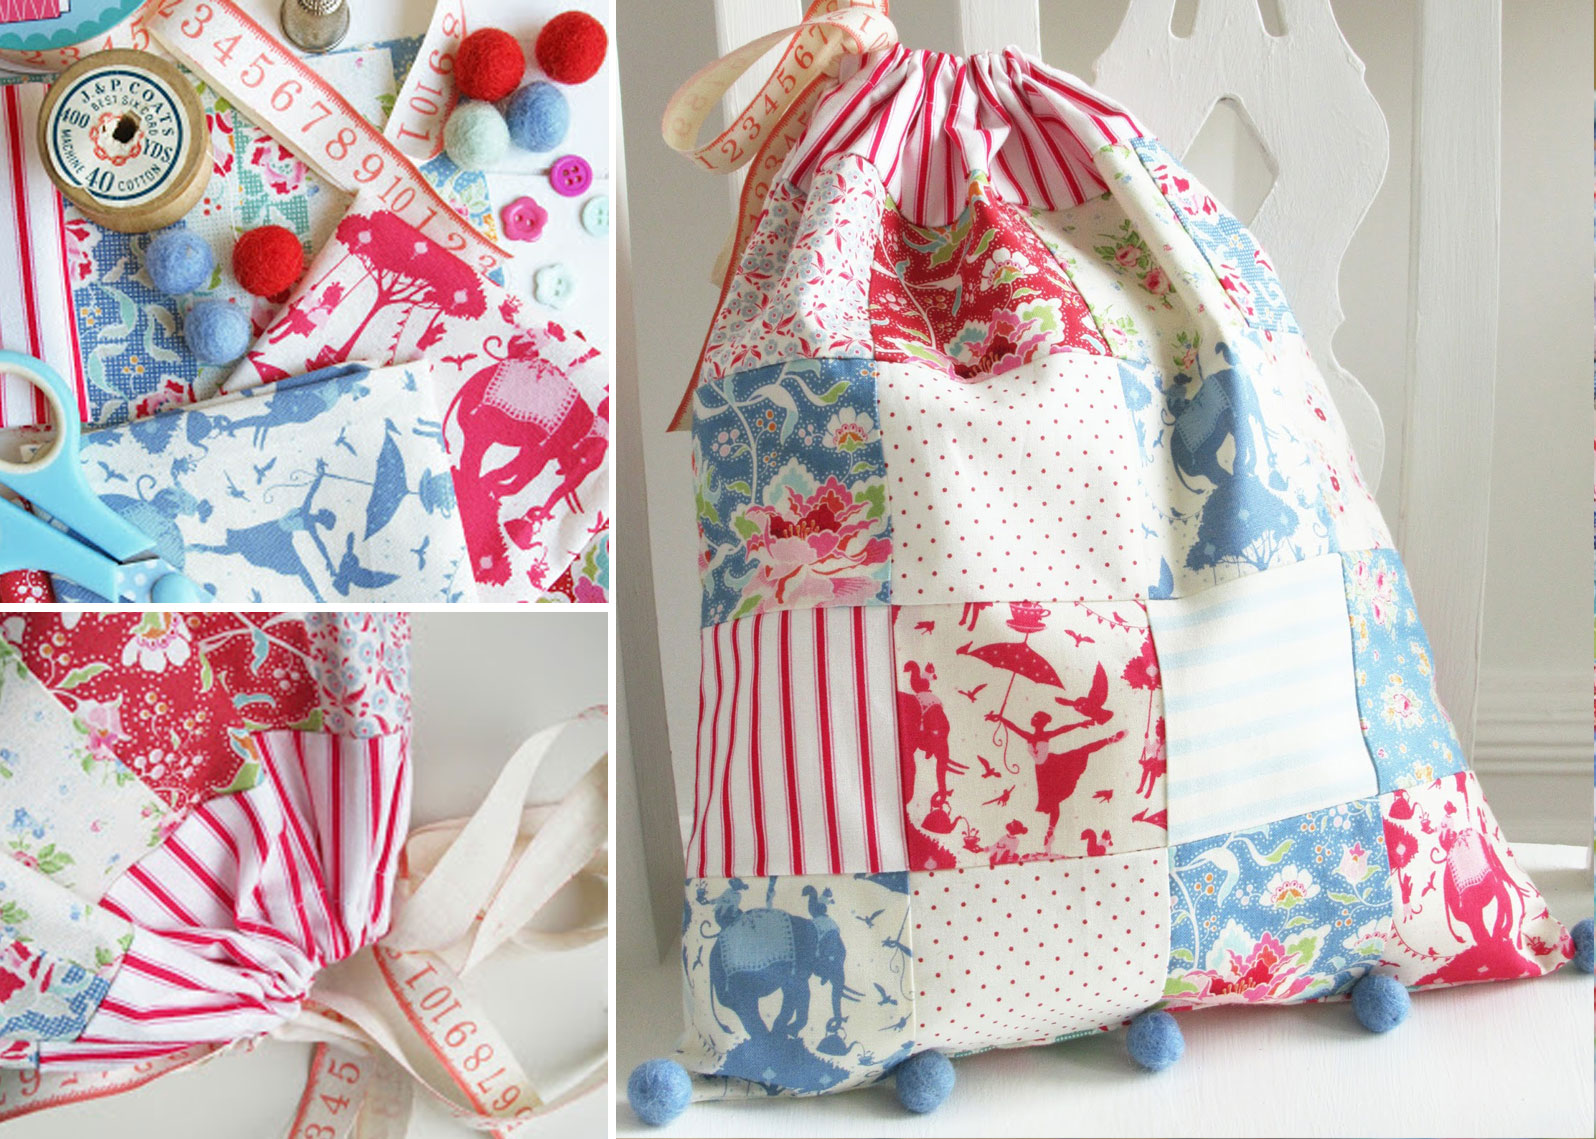 Helen-Philipps-Patchwork-Drawstring-Bag